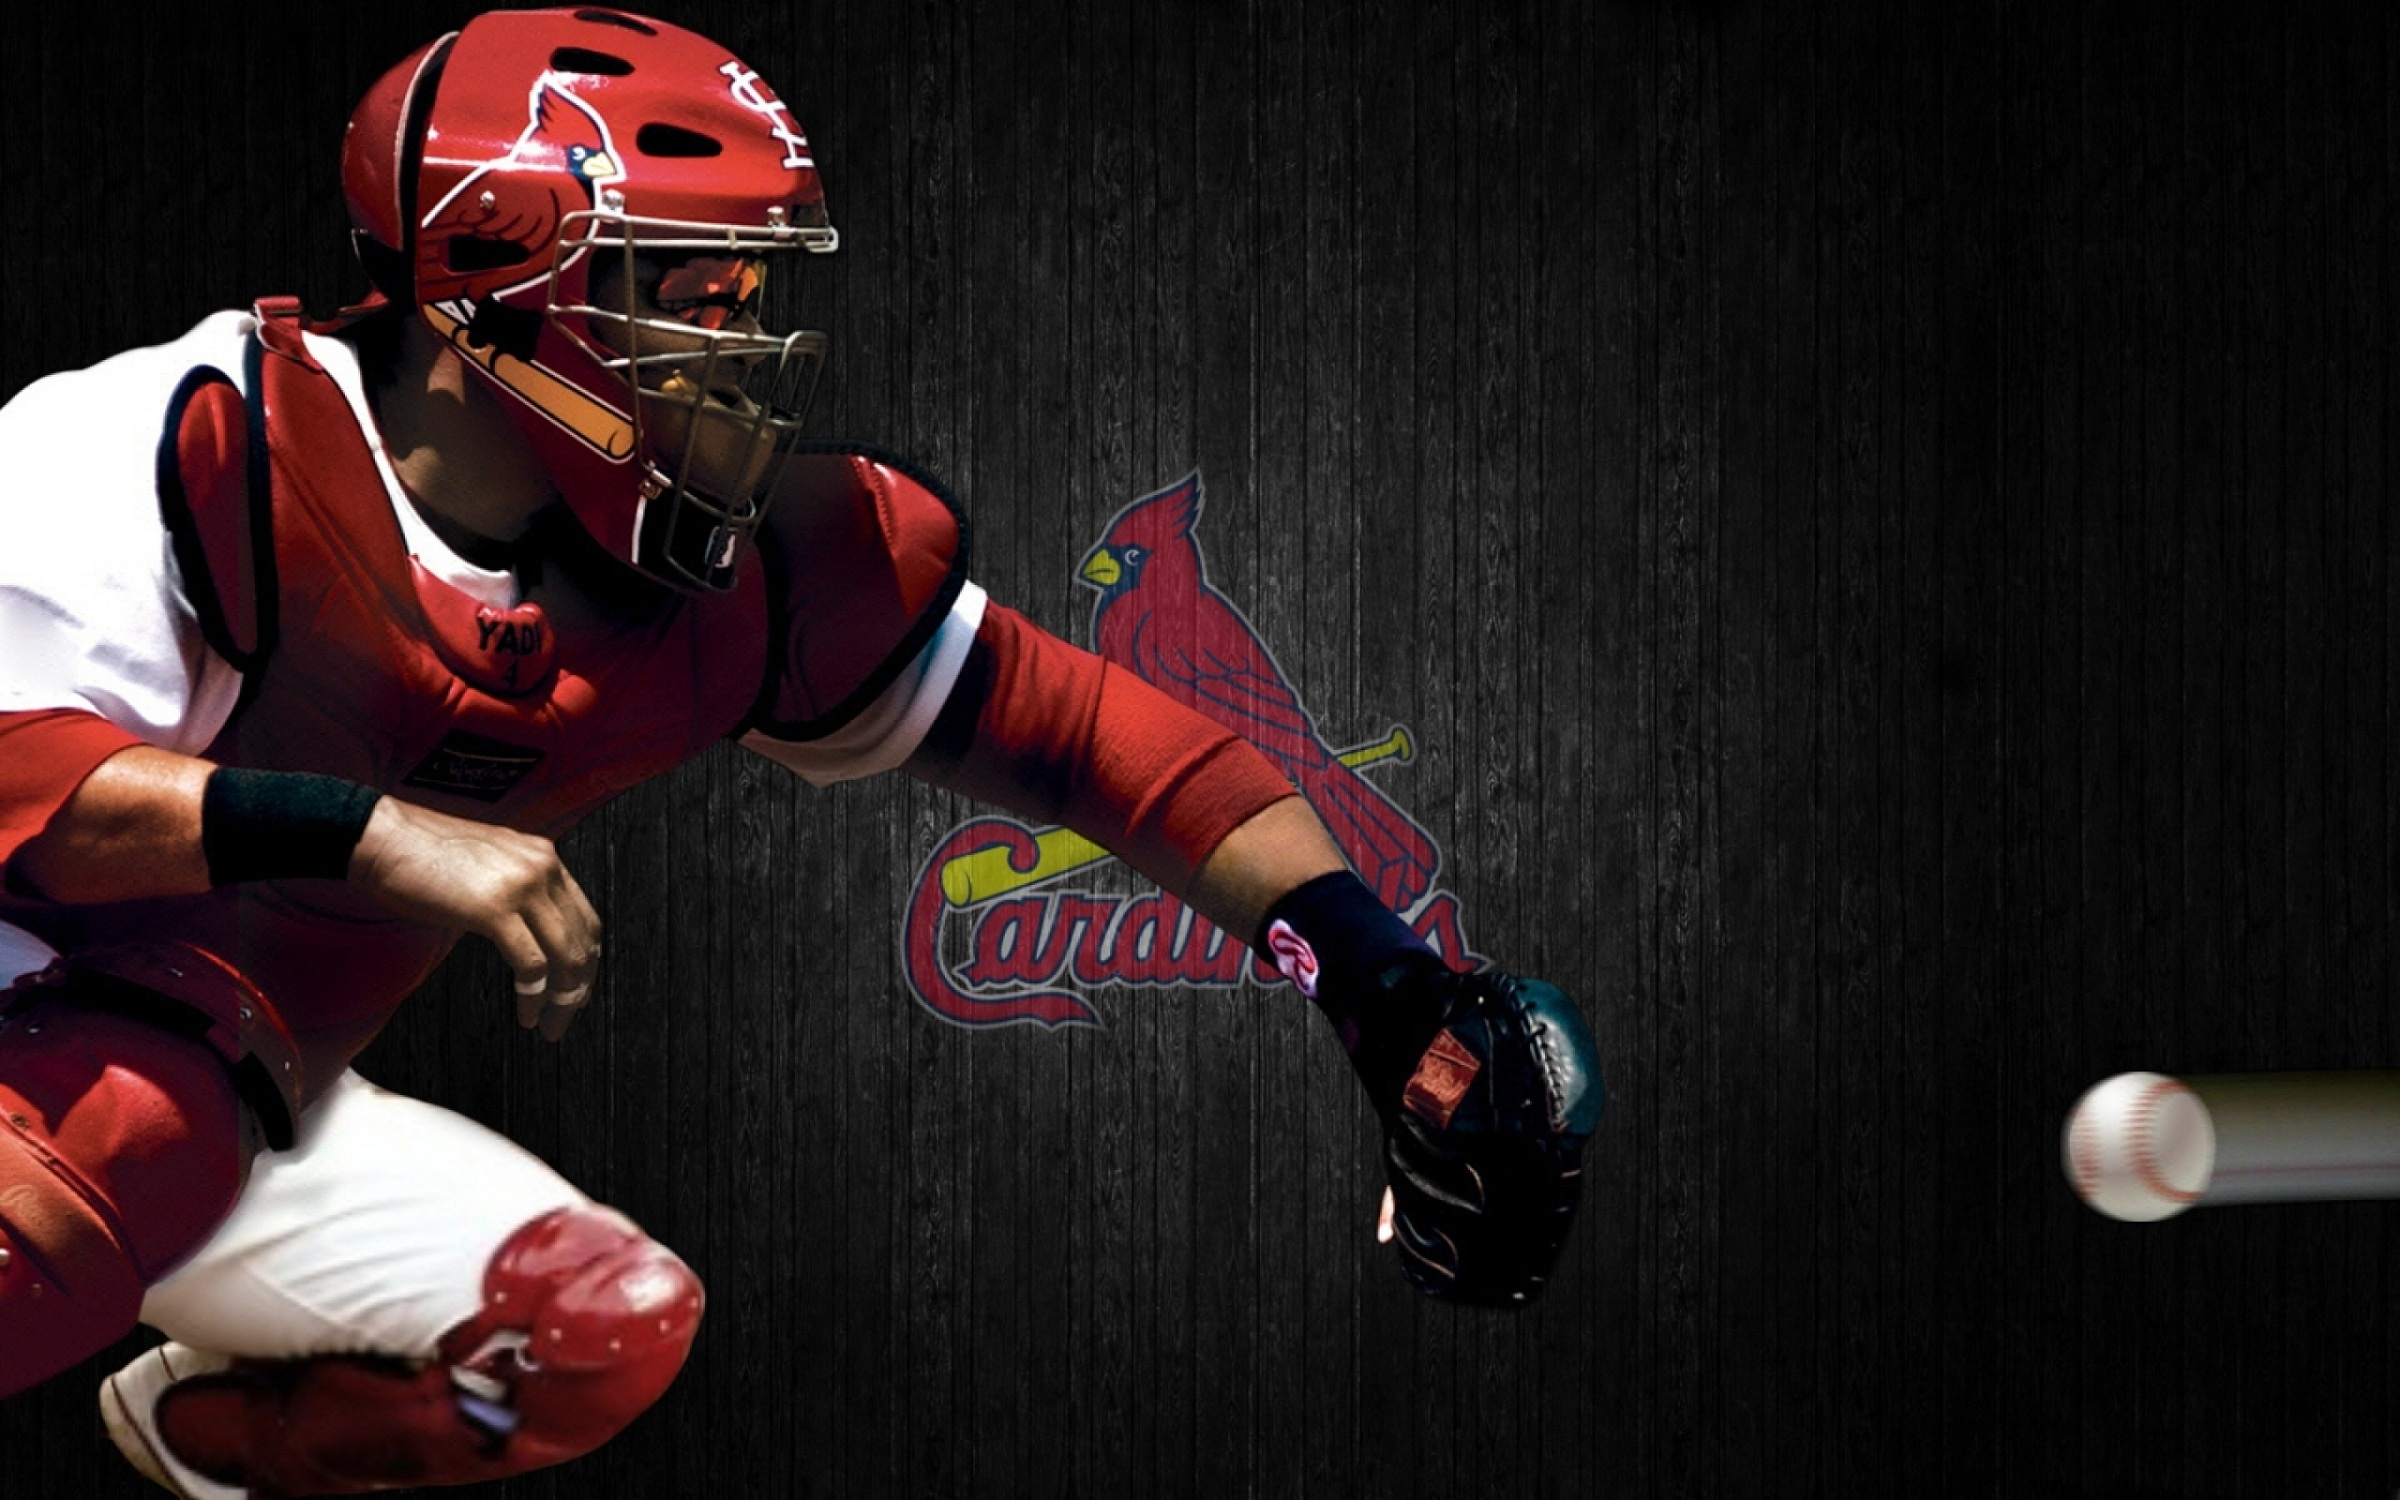 St Louis Cardinals Desktop Wallpapers Wallpaper 2400x1500